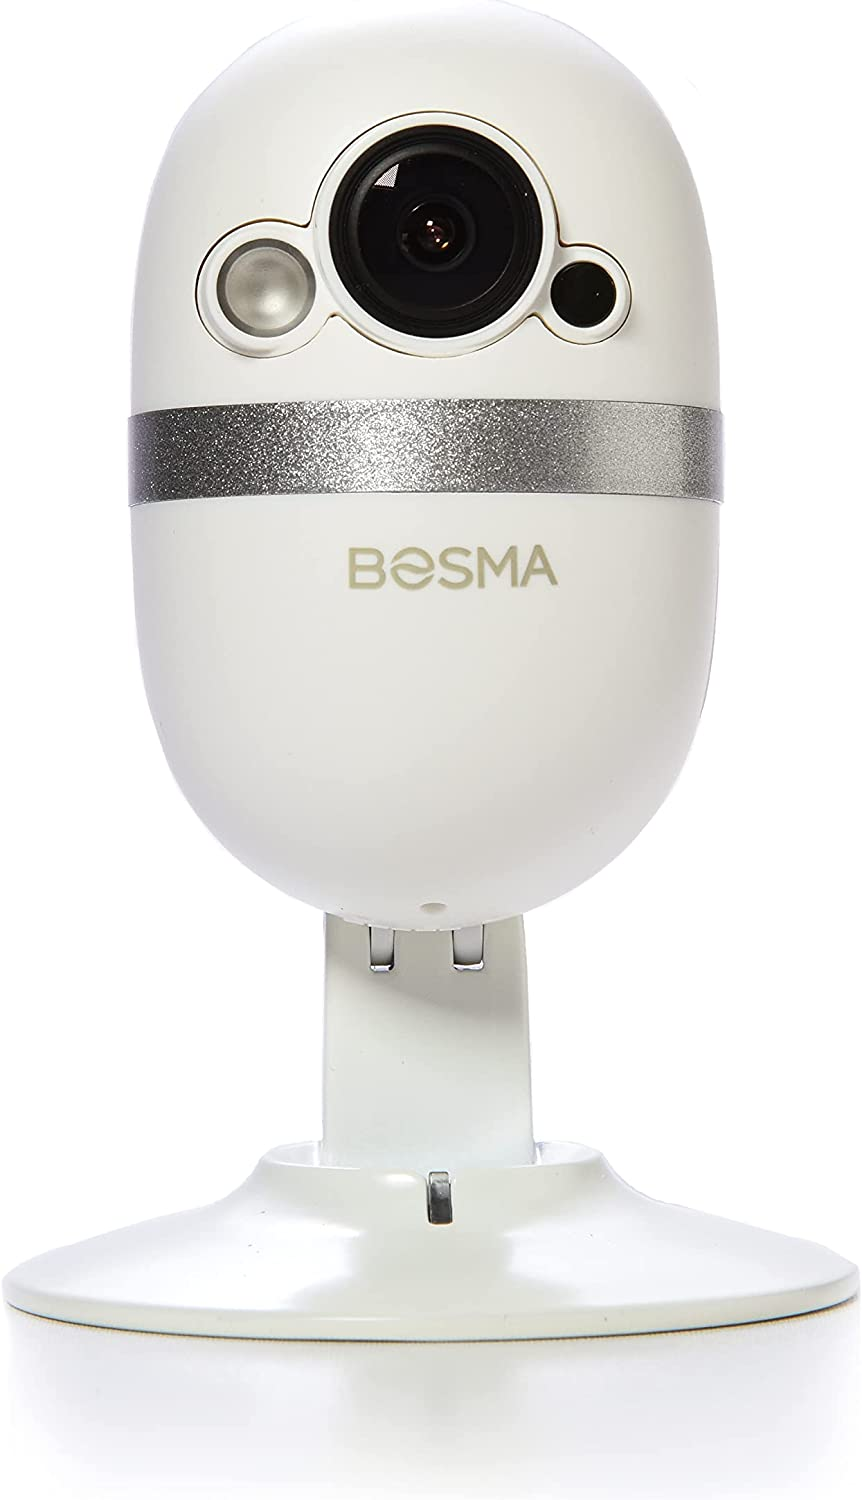 Bosma CapsuleCam Pro Baby Monitor 1080p HD WiFi Indoor Security Camera with Phone app, 2 Way Audio, Super Wide 162° Angle, Color Night Vision, Motion and Sound Detection, Free Local Storage